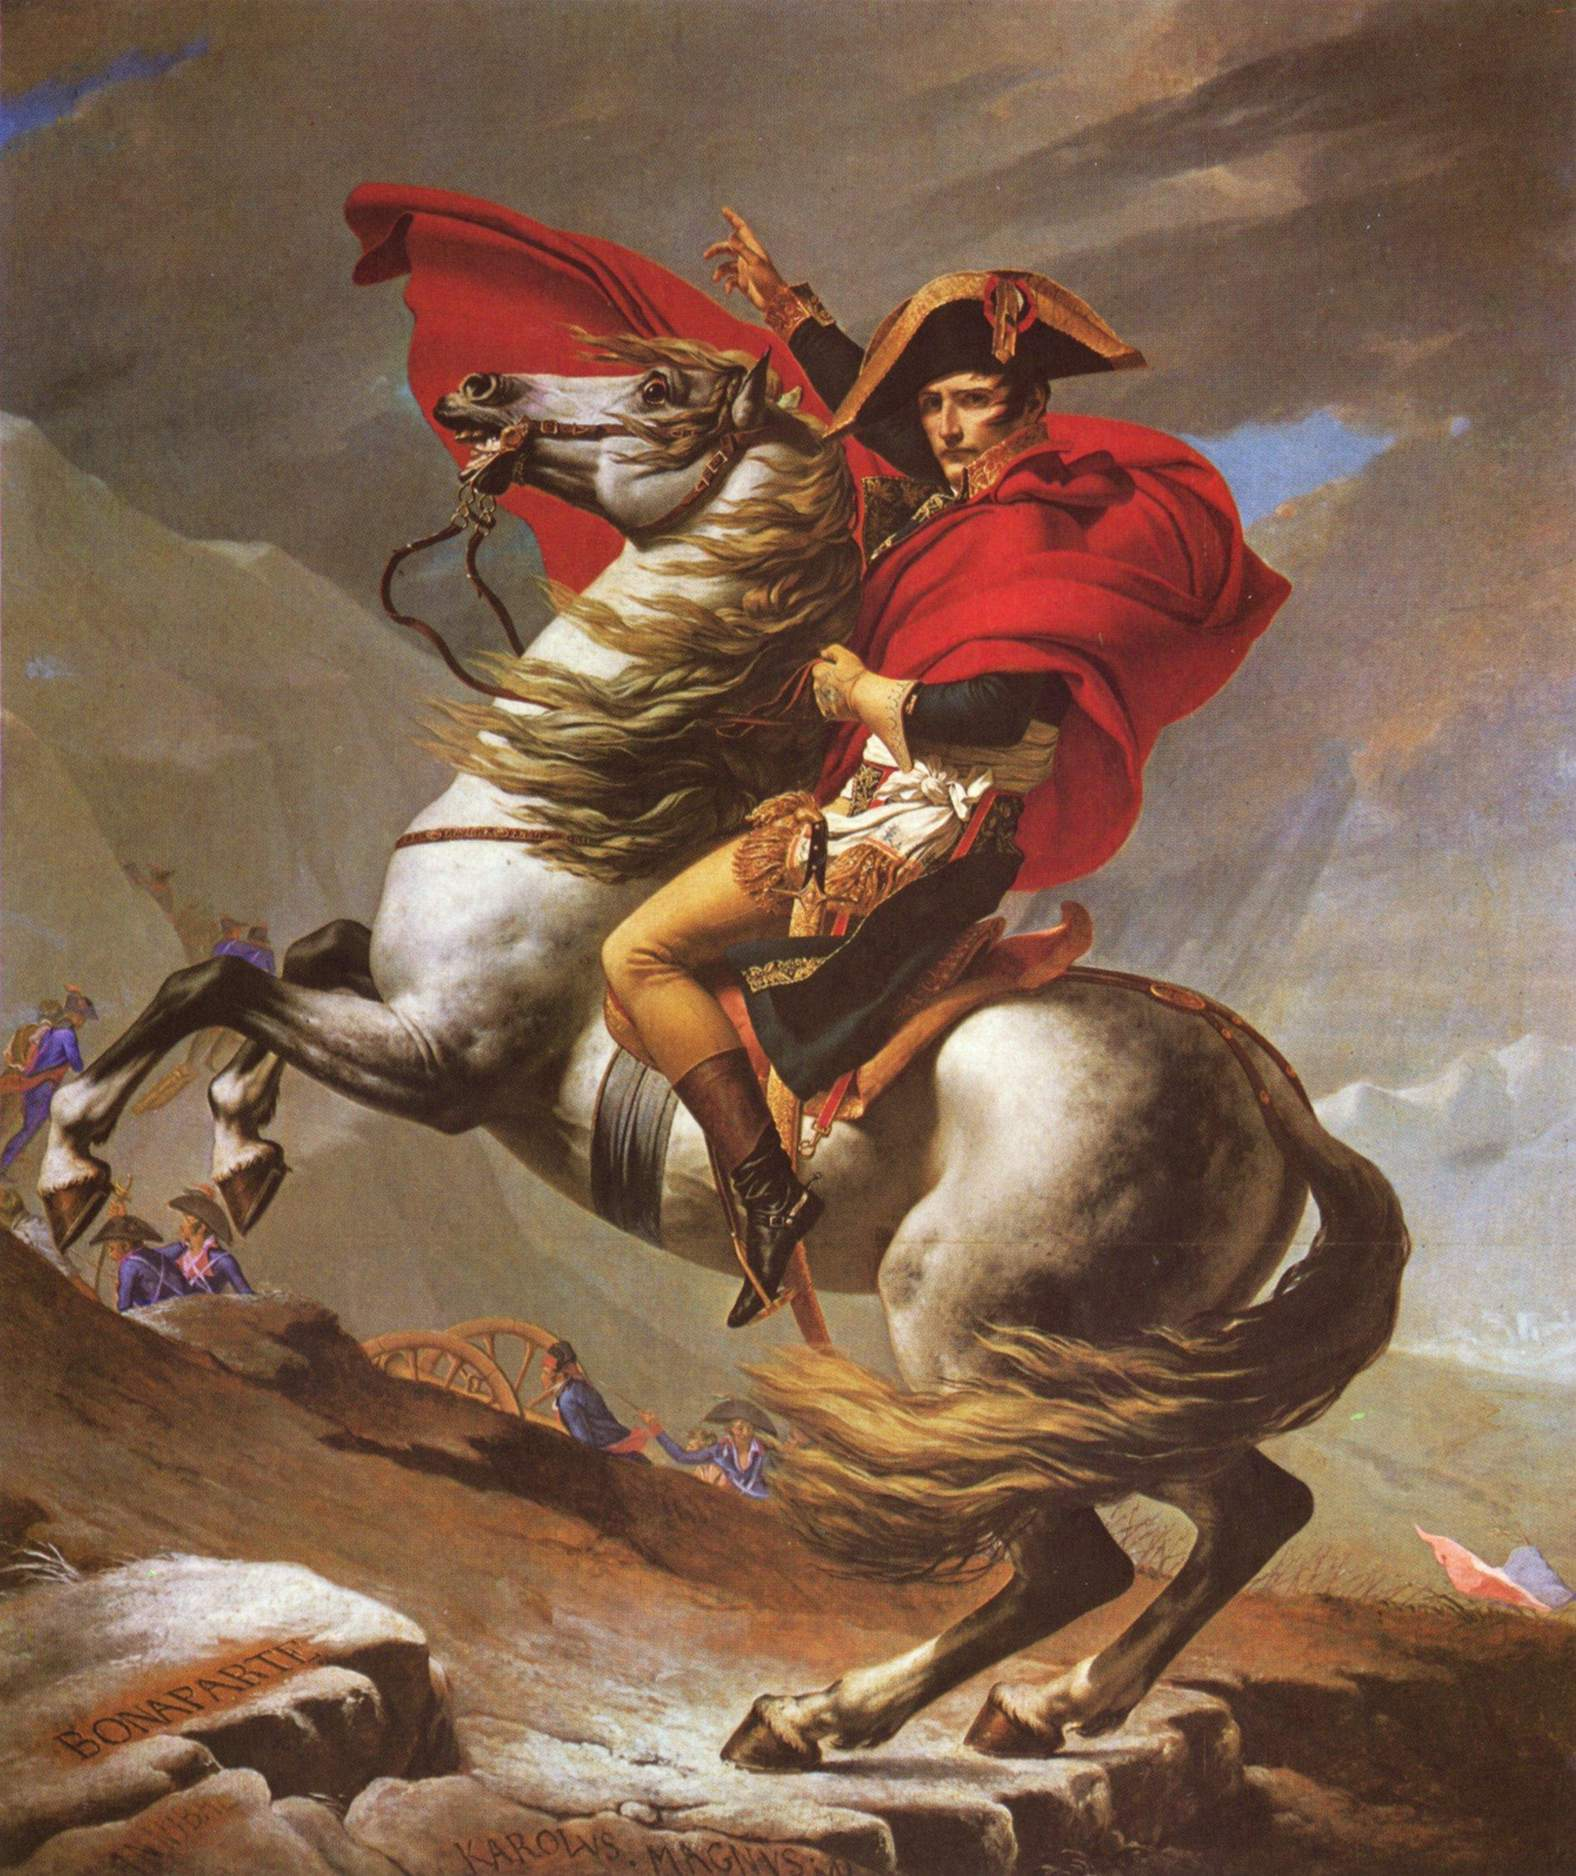 the early life and military career of napoleon bonaparte